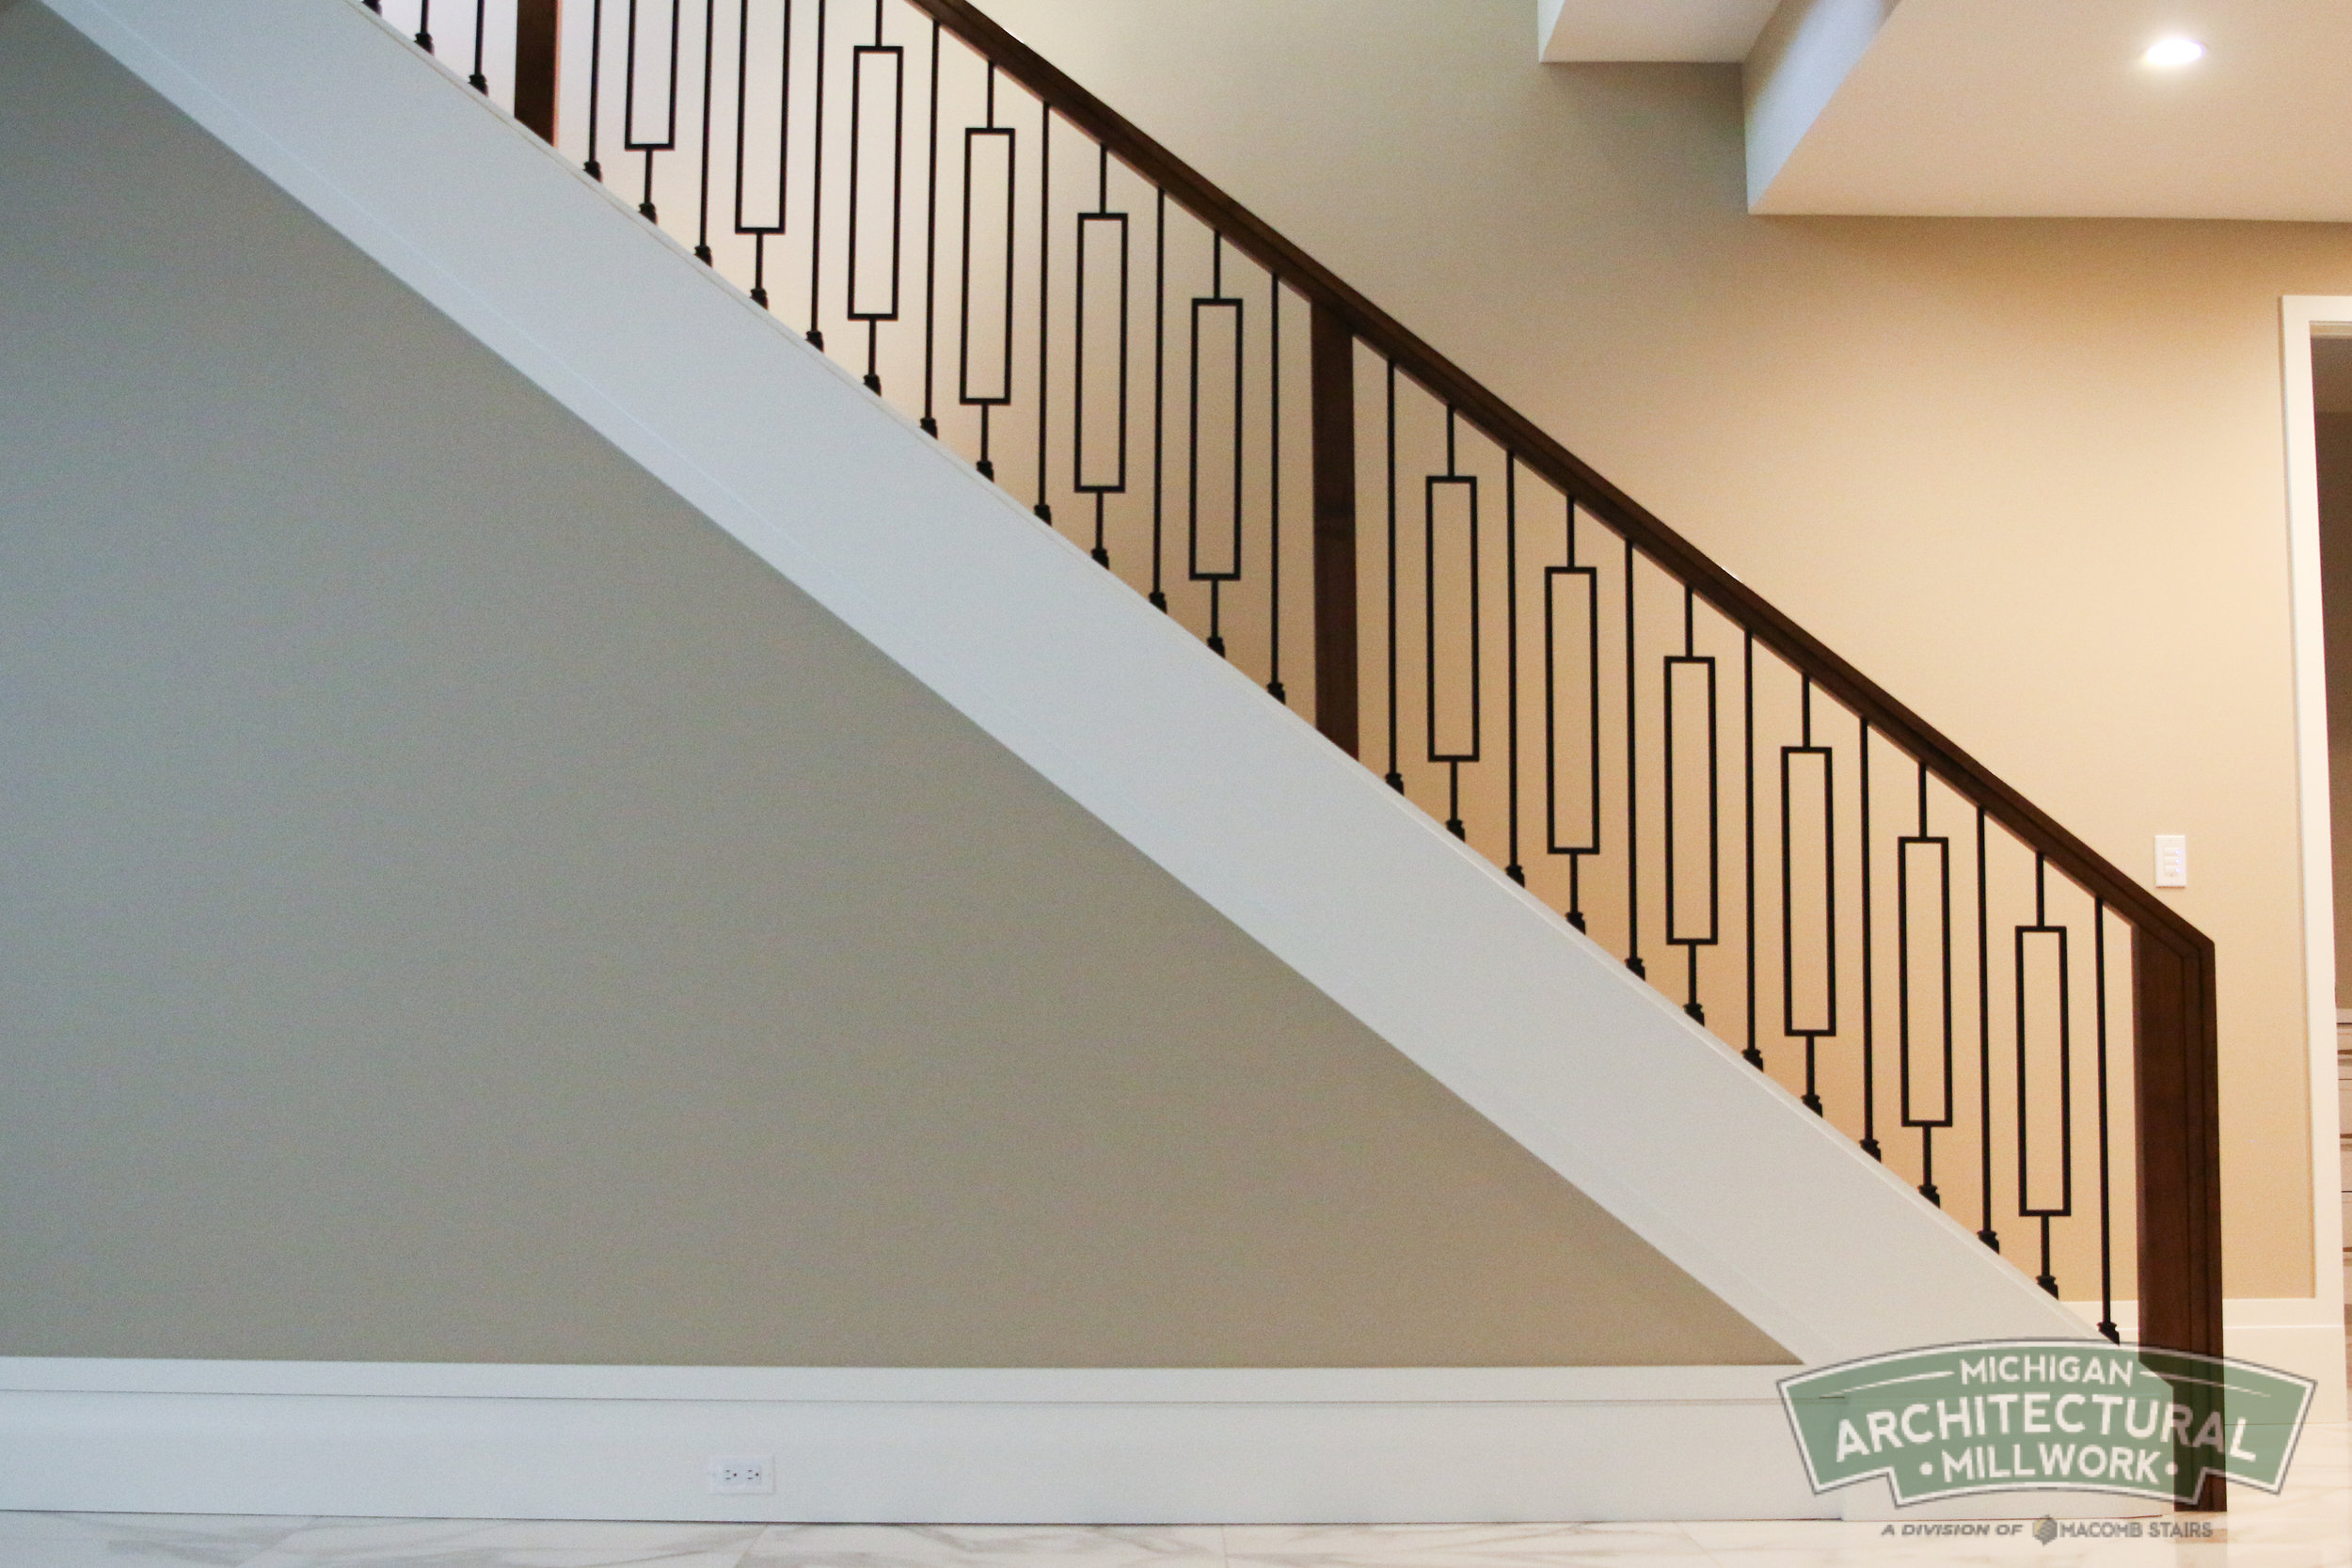 Michigan Architectural Millwork- Moulding and Millwork Photo-1.jpg